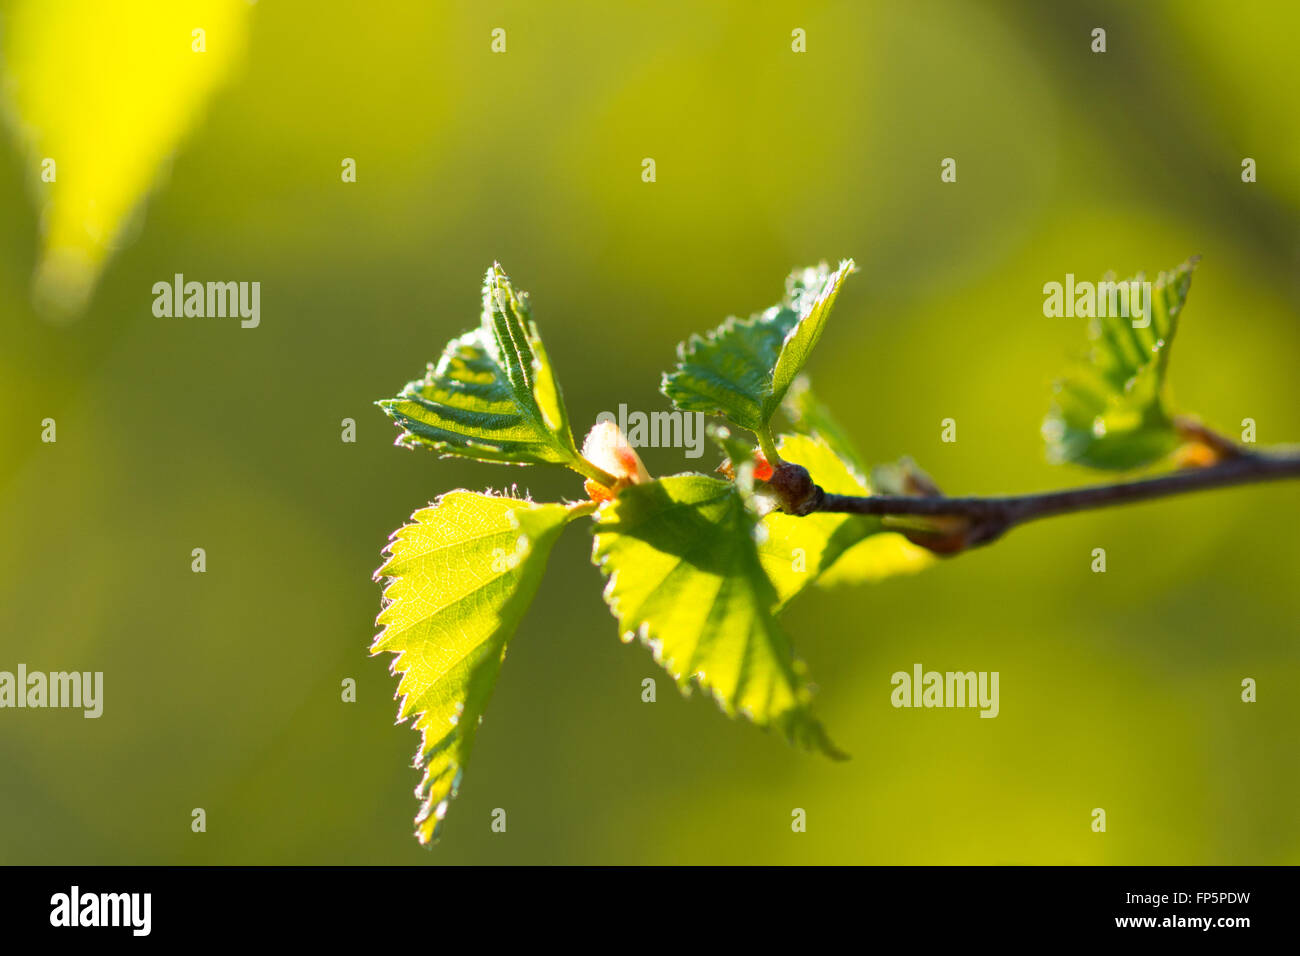 young spring leaves on green blurred background - Stock Image